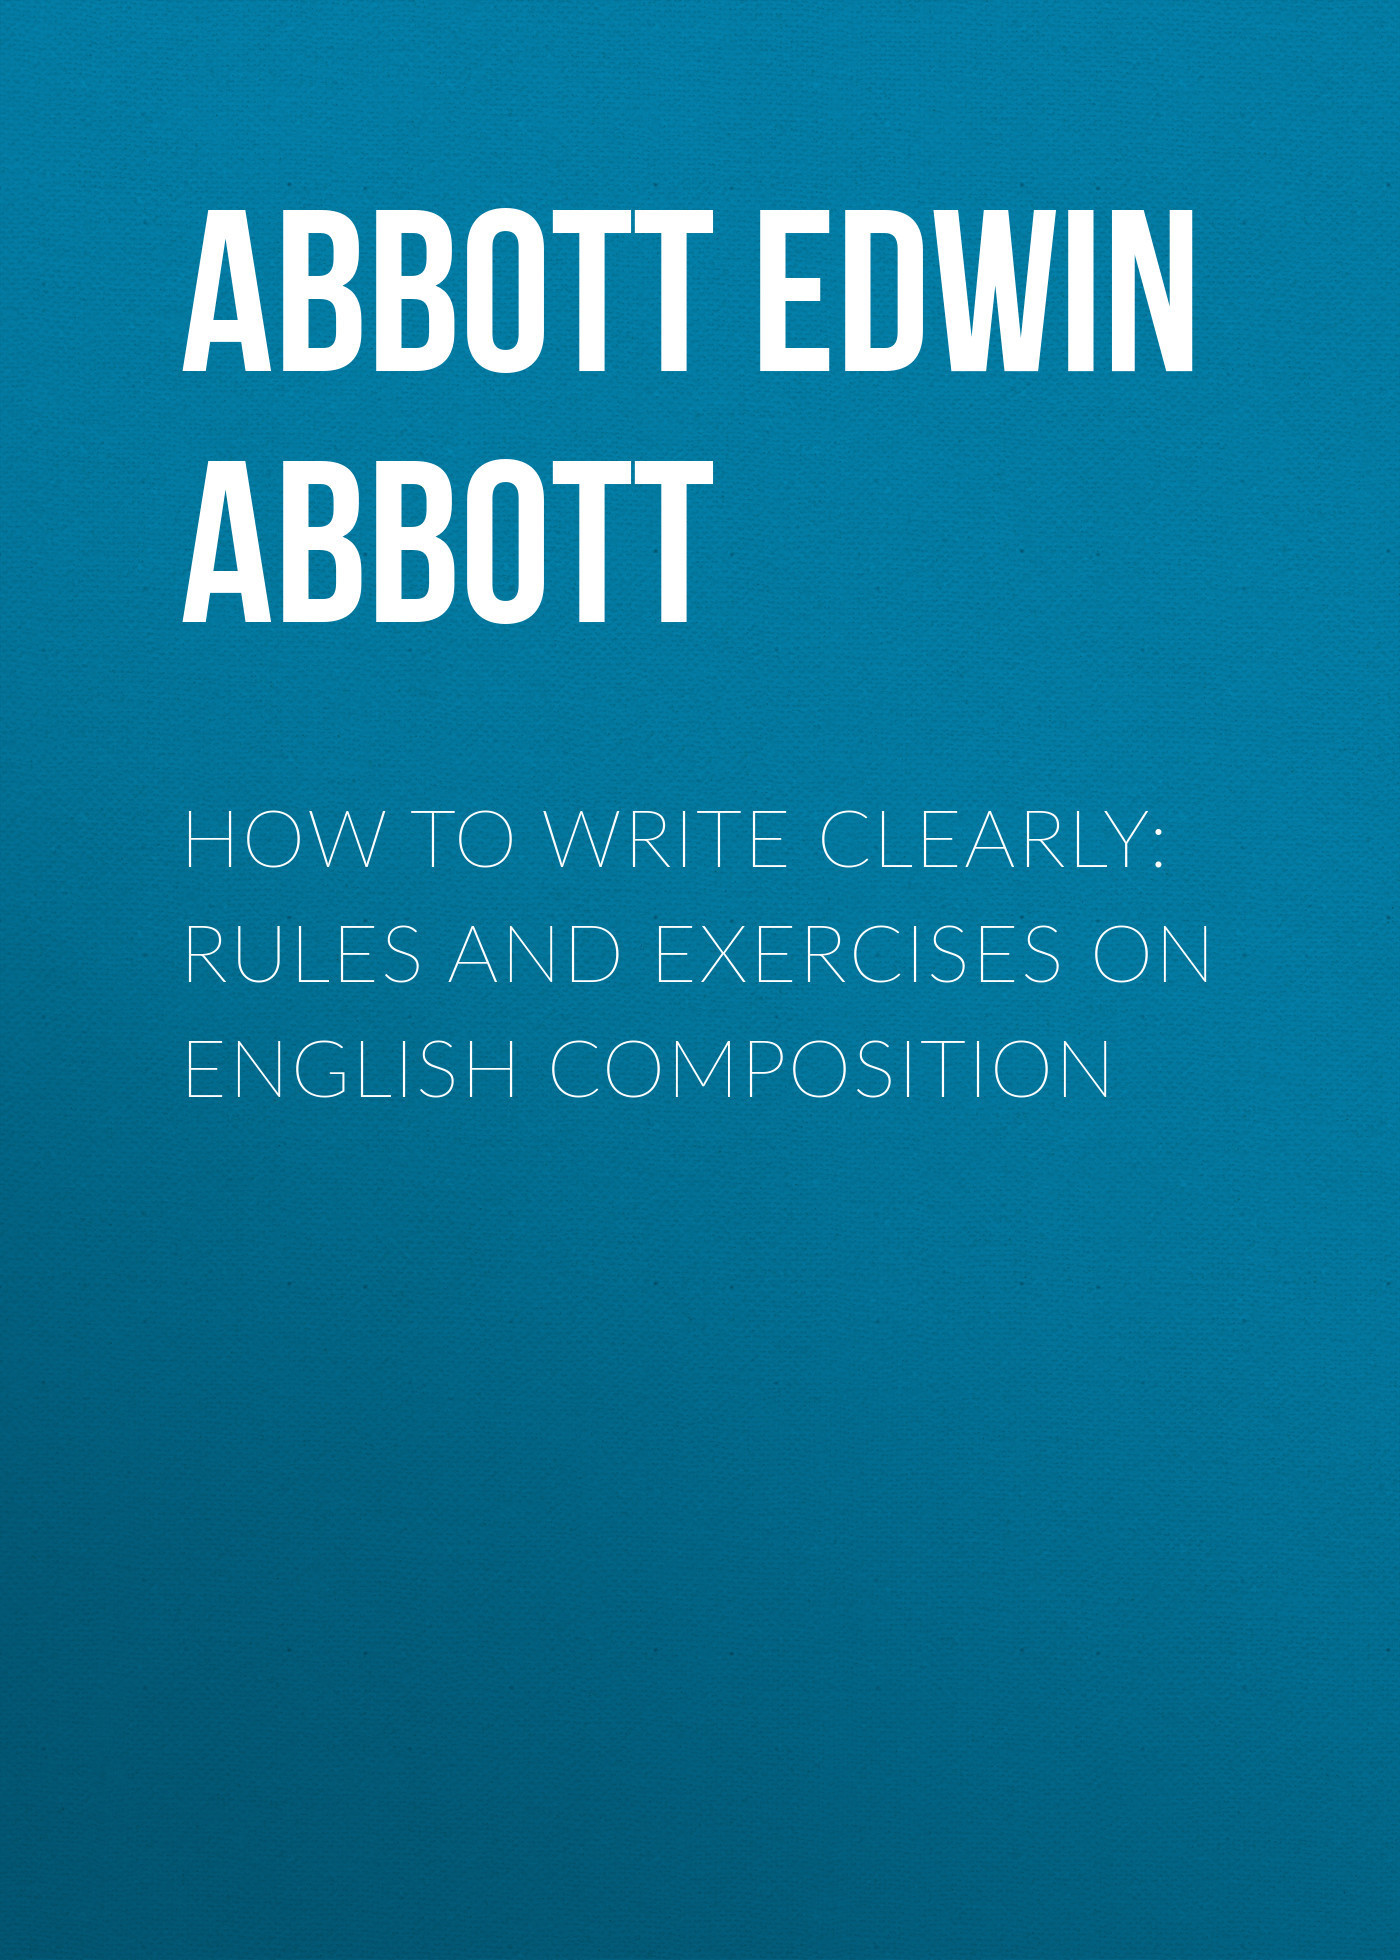 Abbott Edwin Abbott How to Write Clearly: Rules and Exercises on English Composition abbott shmf 0 9g 50